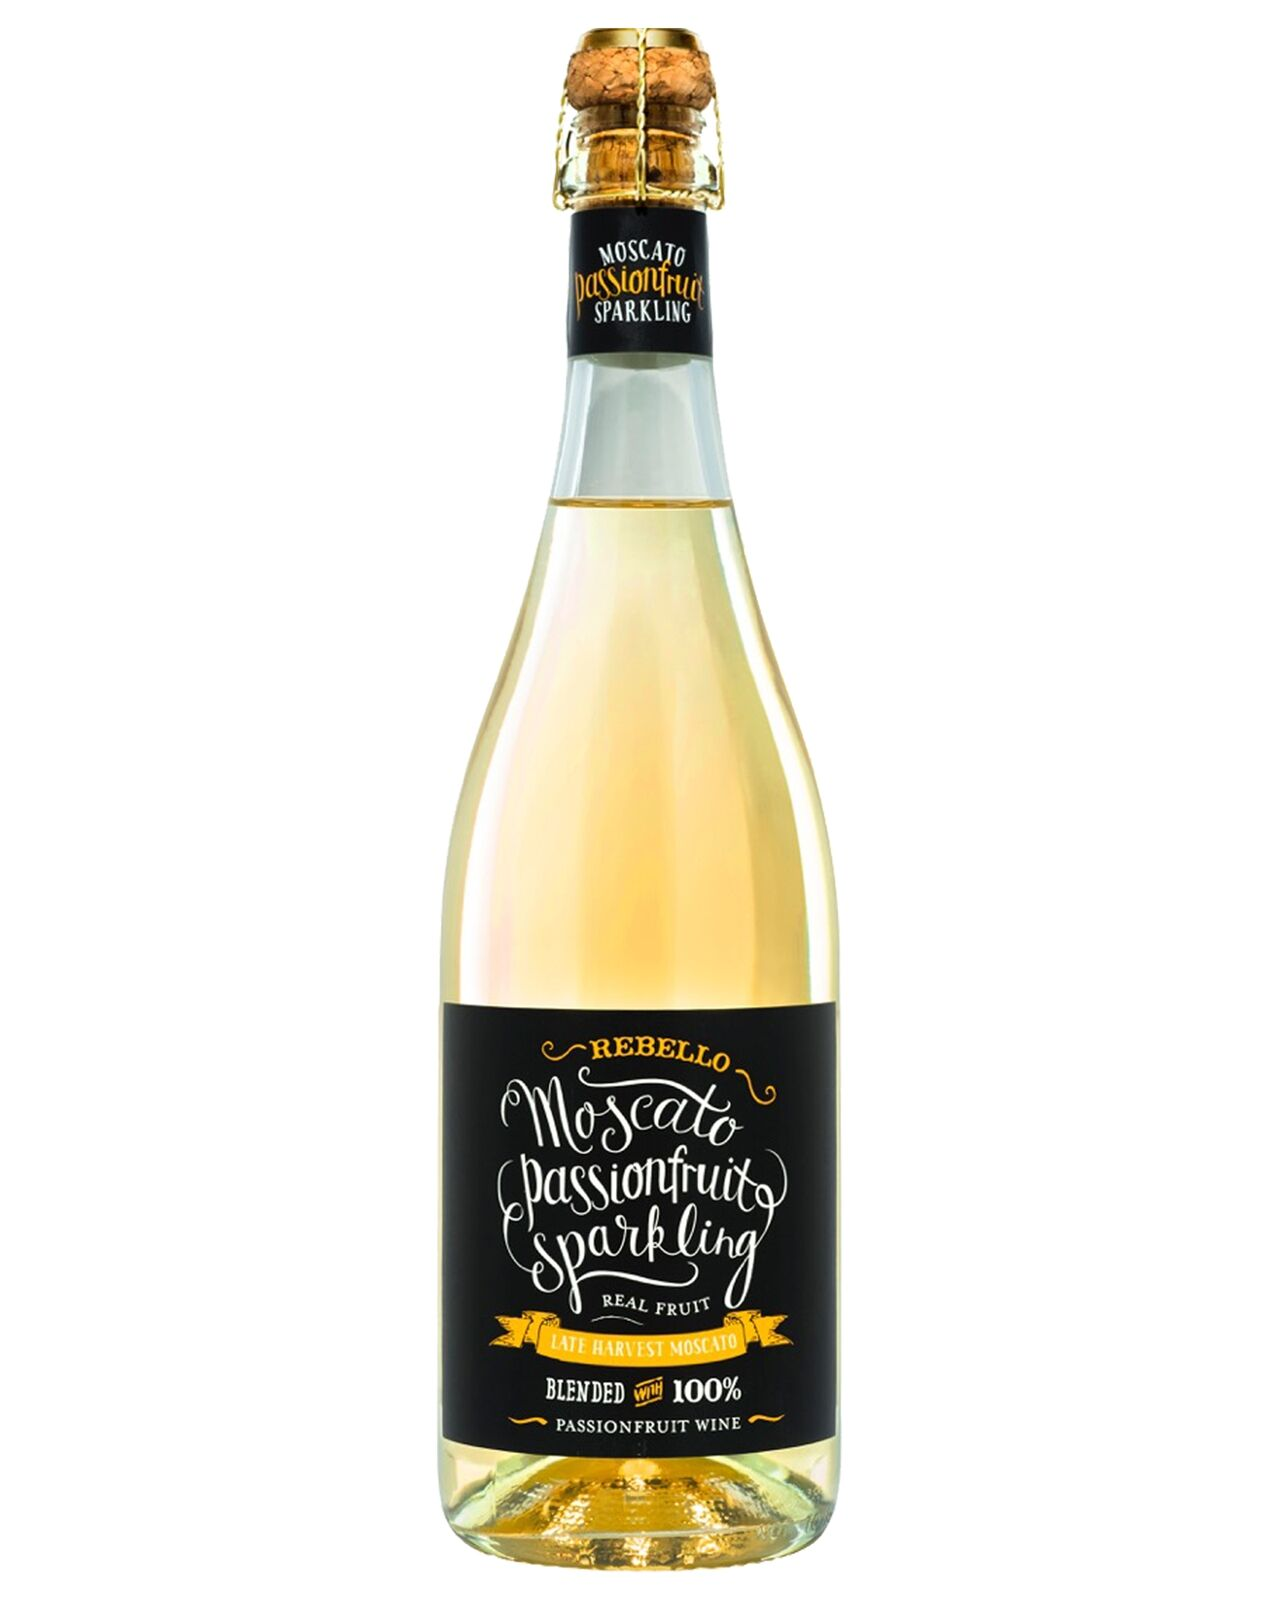 Rebello Wines Moscato Passionfruit Sparkling 2016 case of 6 Sparkling Sweet Wine